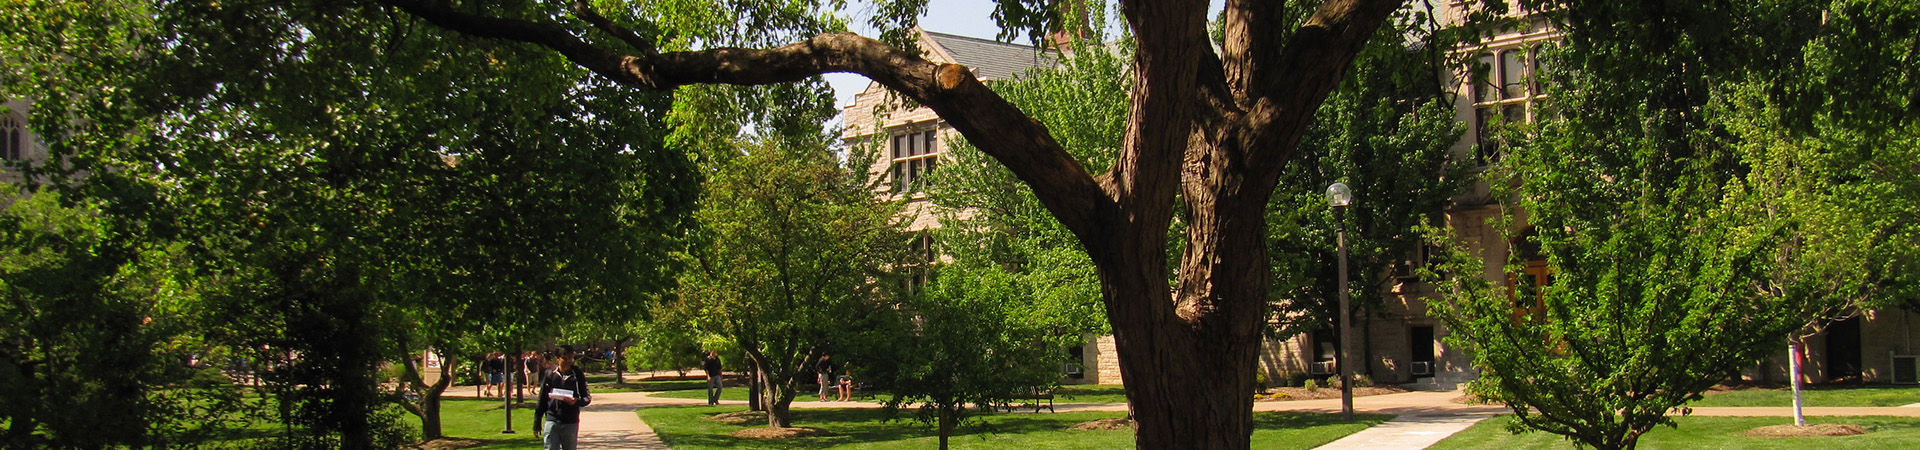 Trees on campus